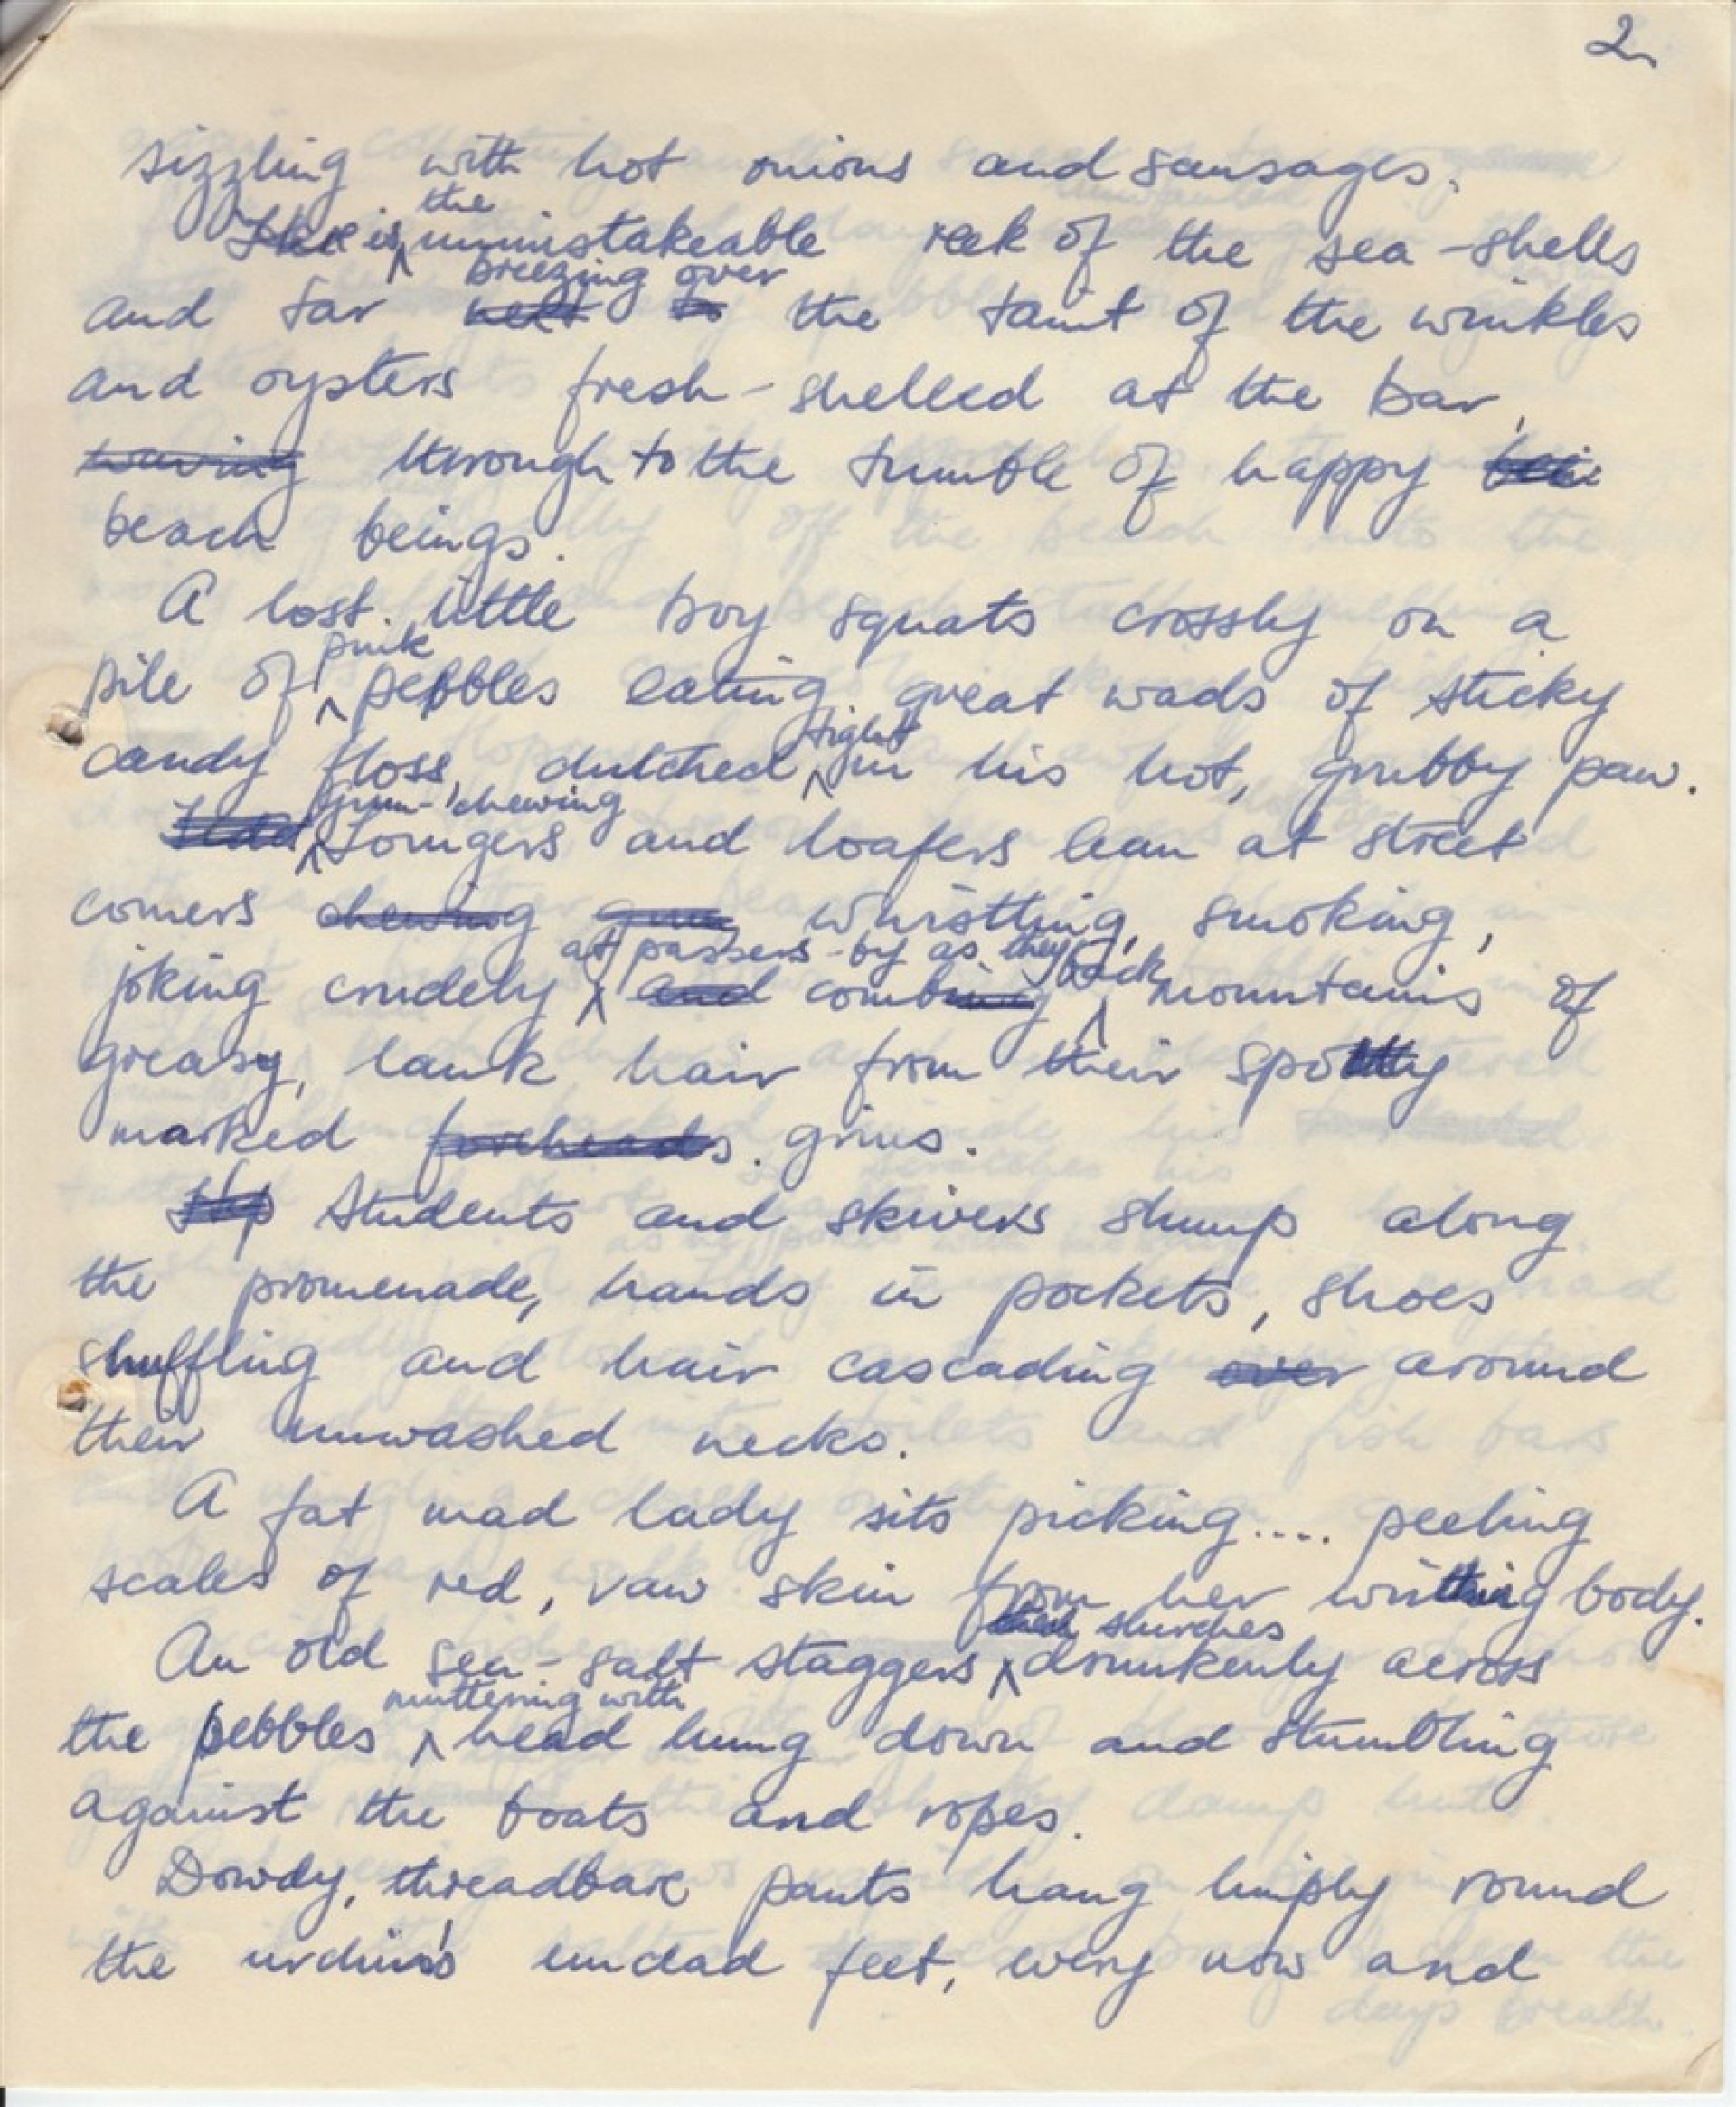 005 Essay Example Handwritten Letter Lia Page Handwriting Recognition Importance Good Analysis Cursive Vs Typing Sat Titles For Fearsome On Short Of In Hindi Gujarati 1920